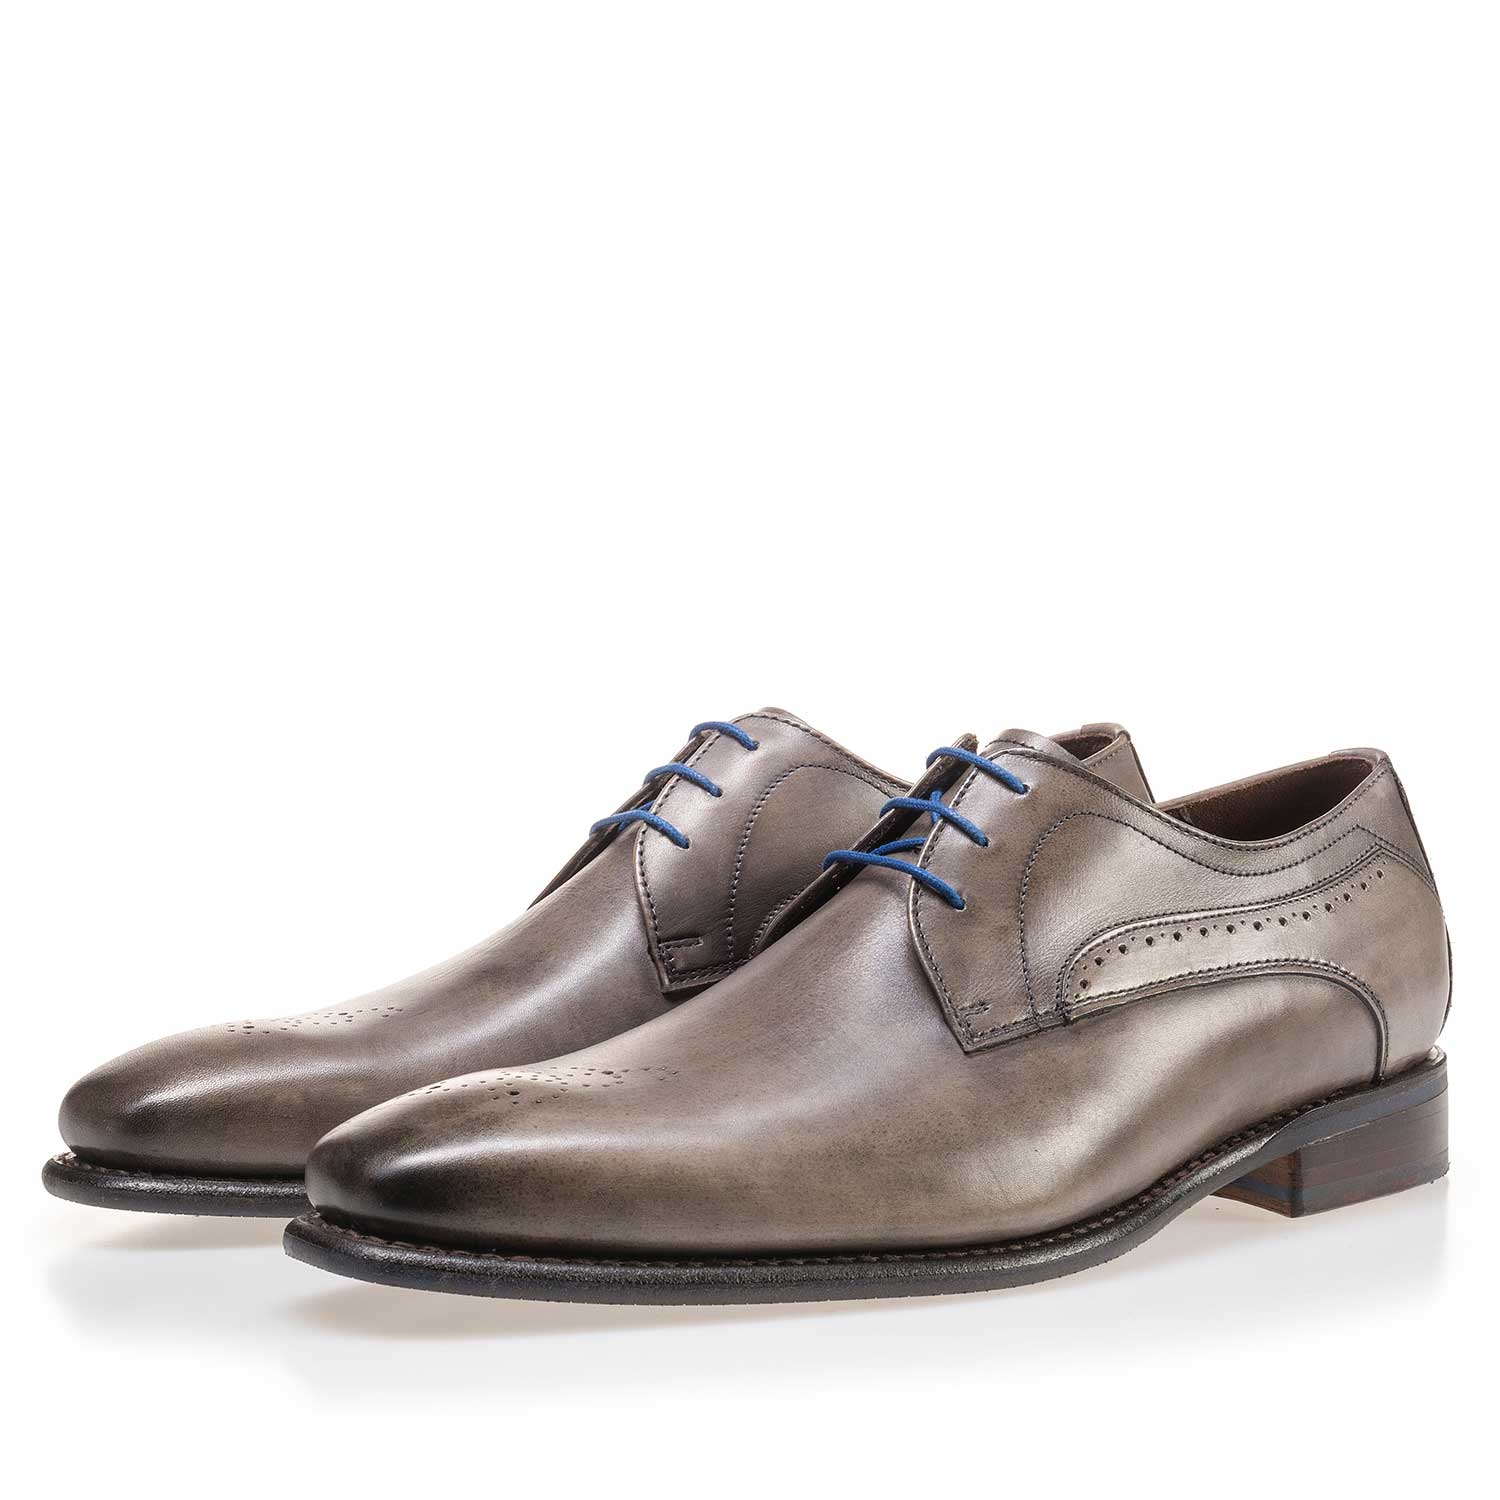 14182/02 - Taupe-coloured calf's leather lace shoe